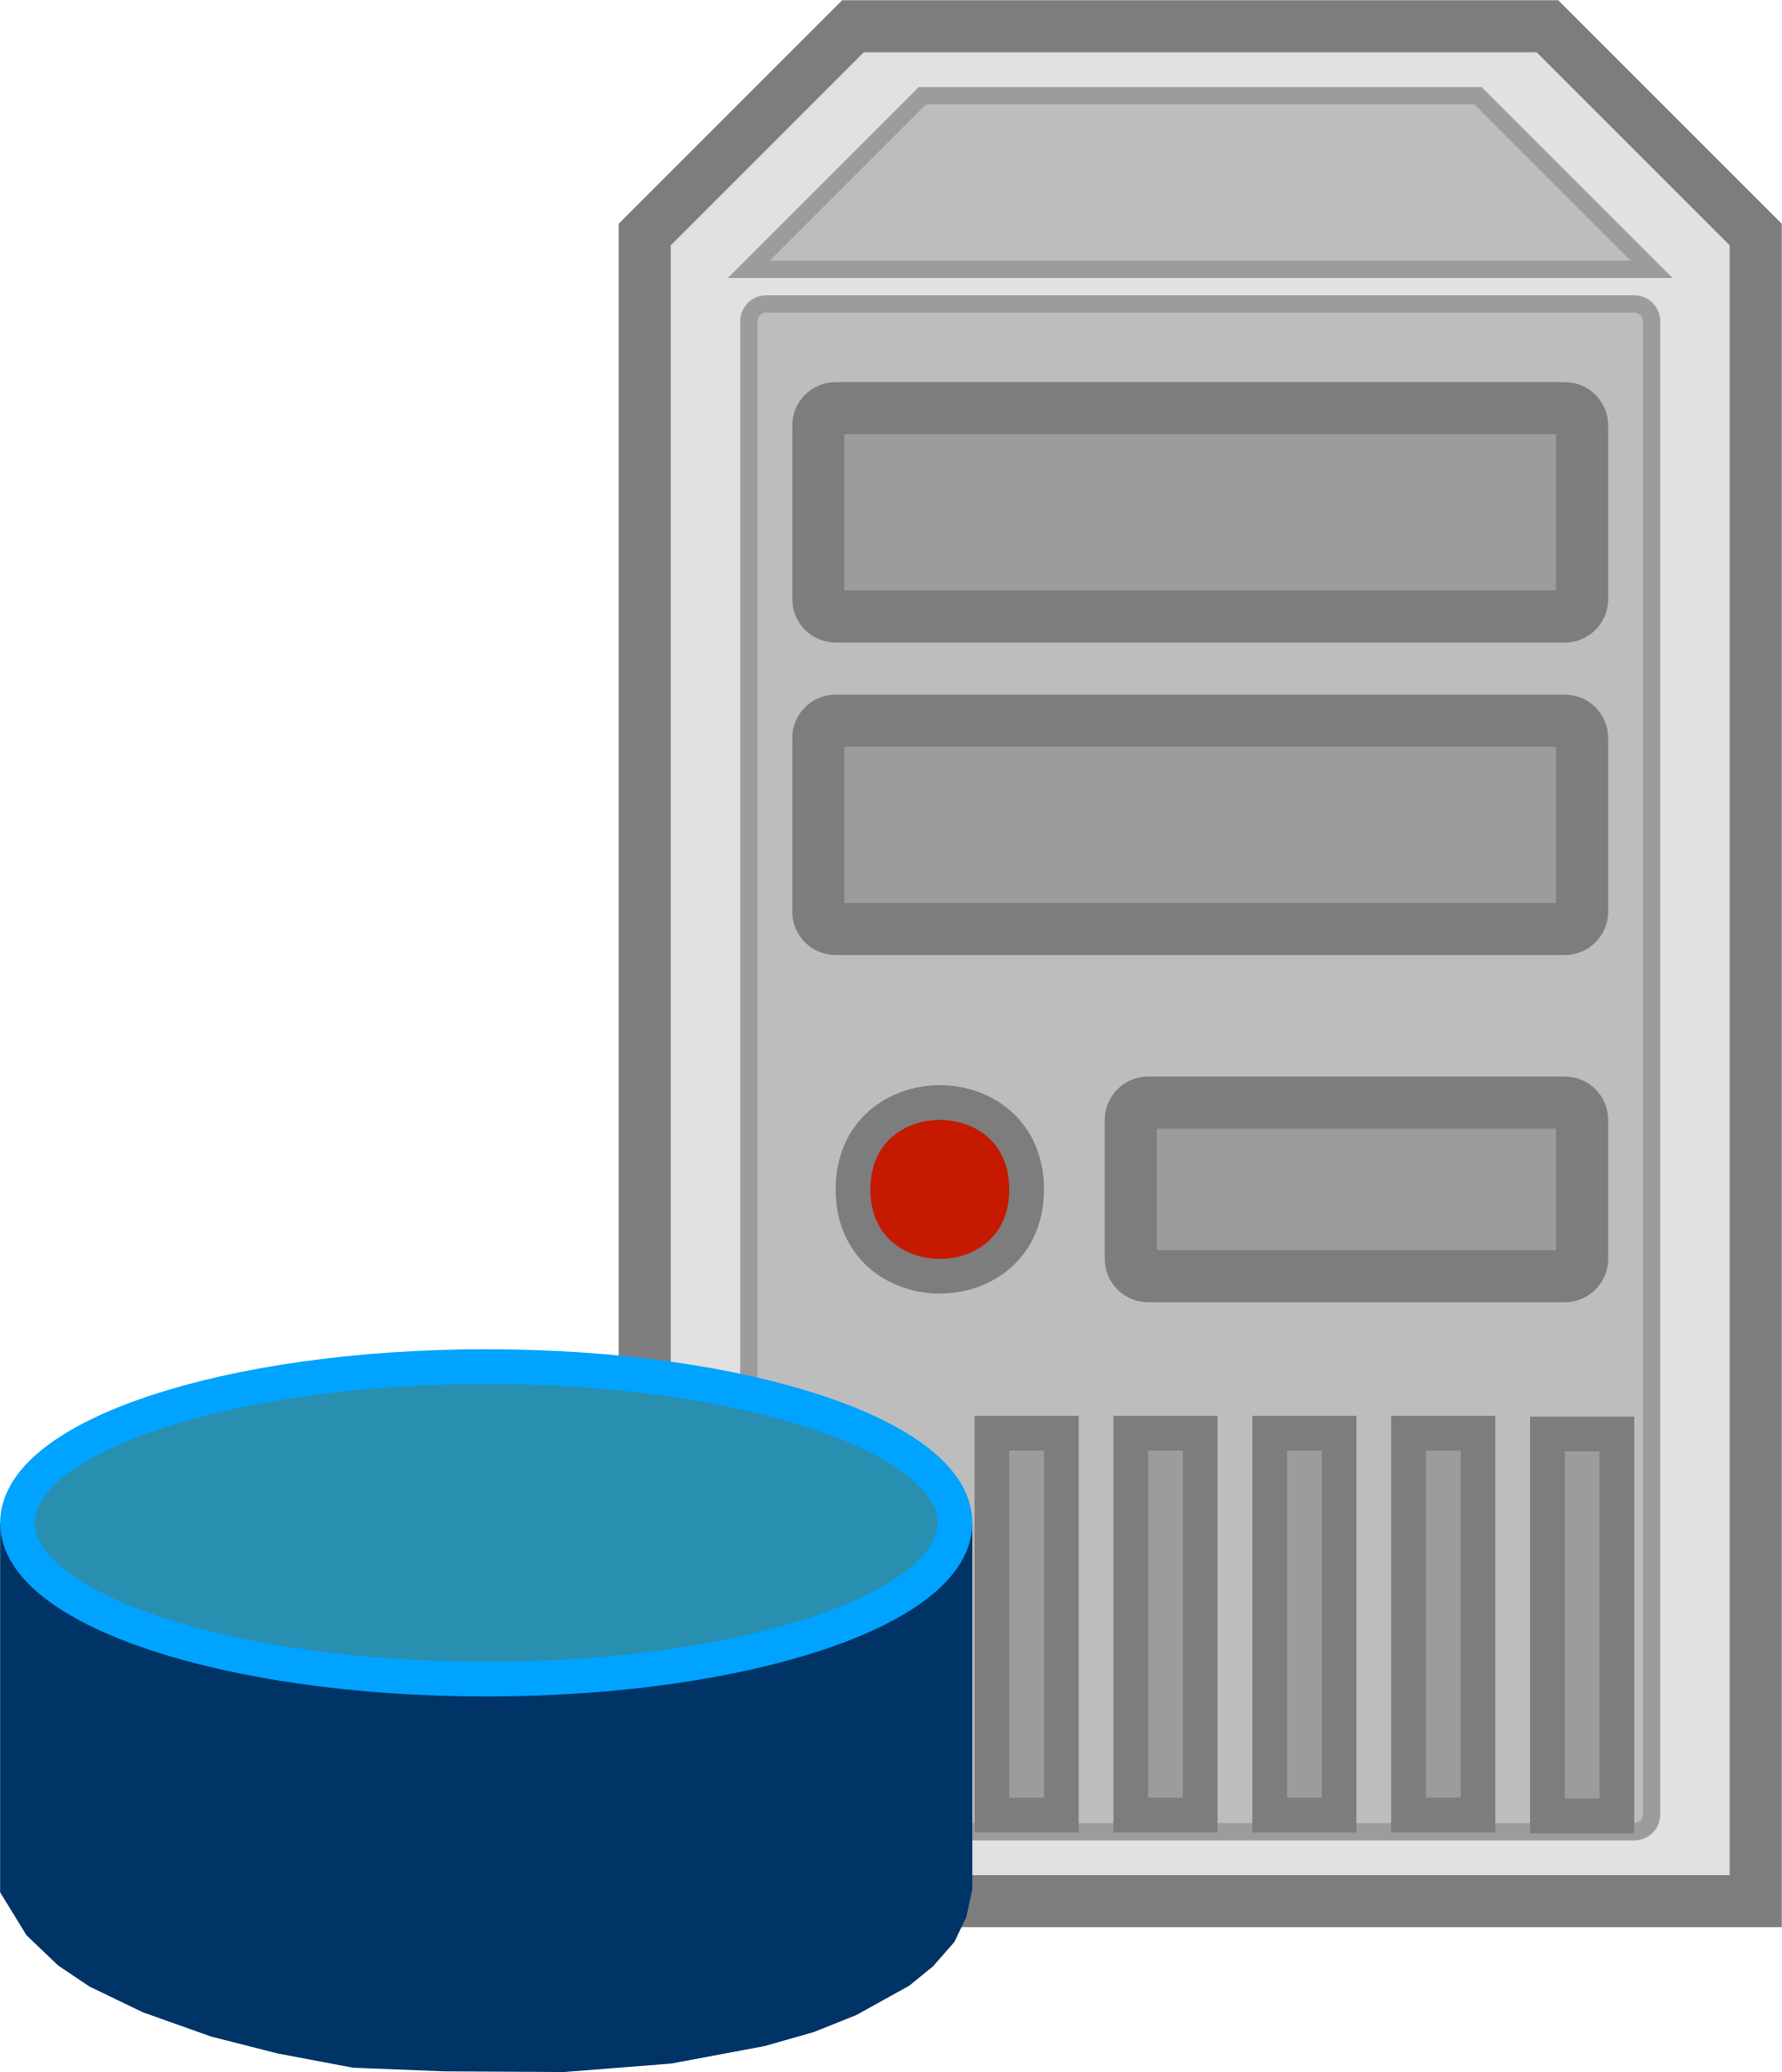 Server - database by cyberscooty